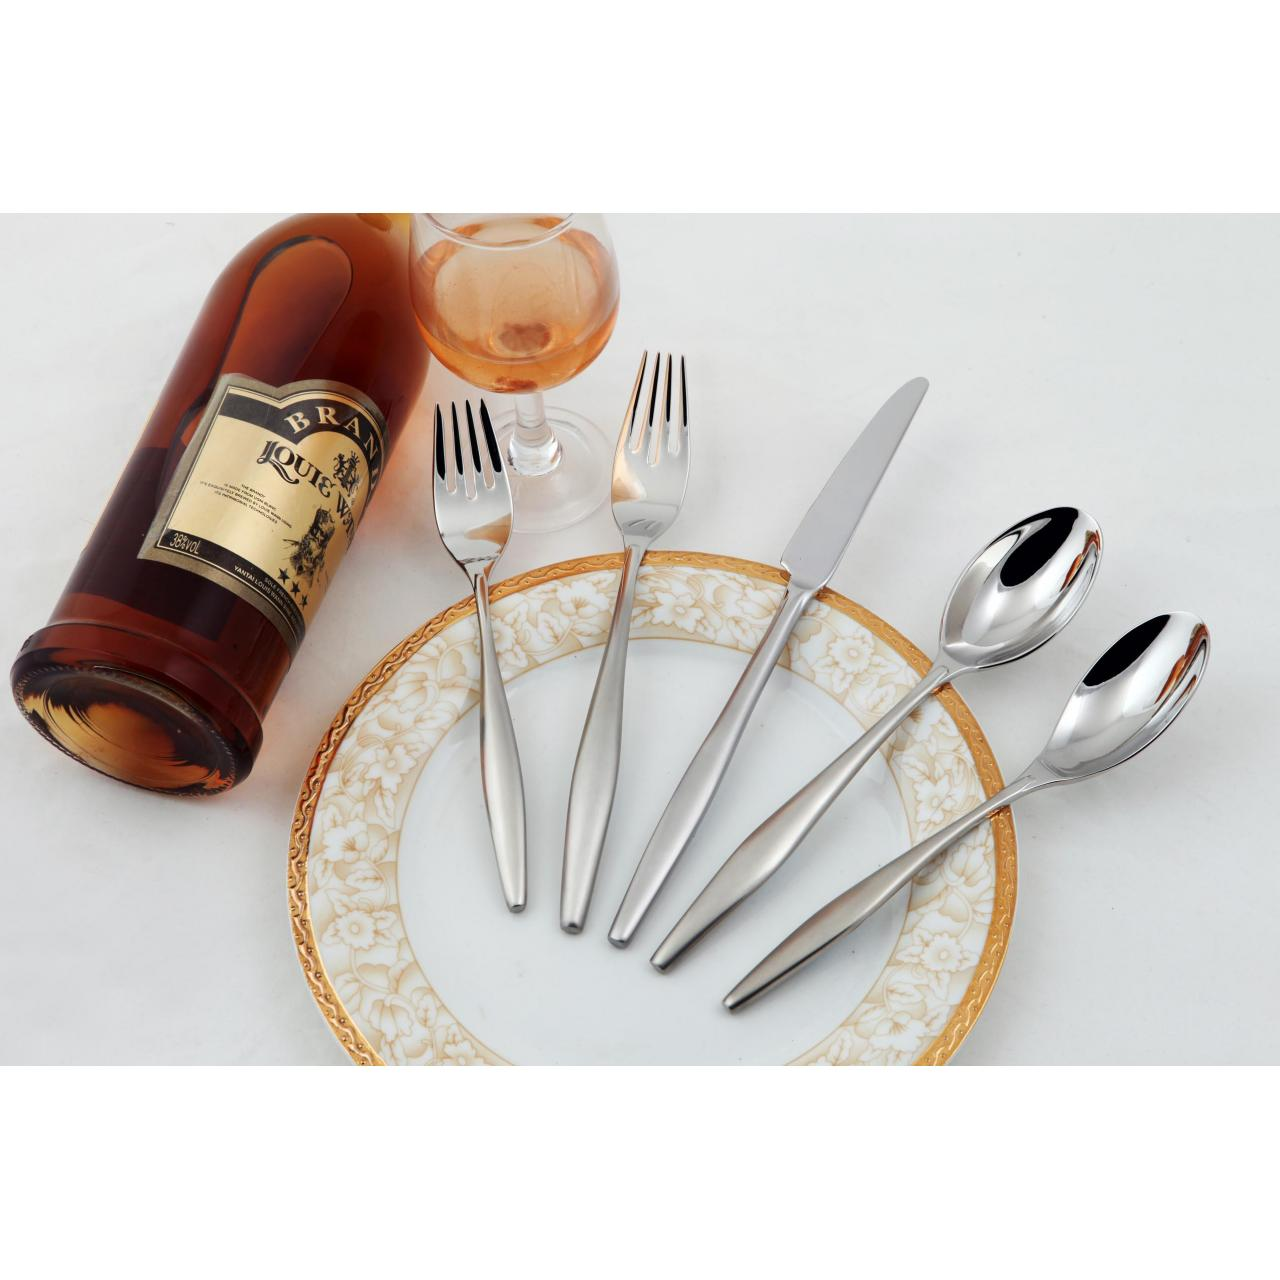 Cheap Tableware And Utensil Number: T-16 for sale